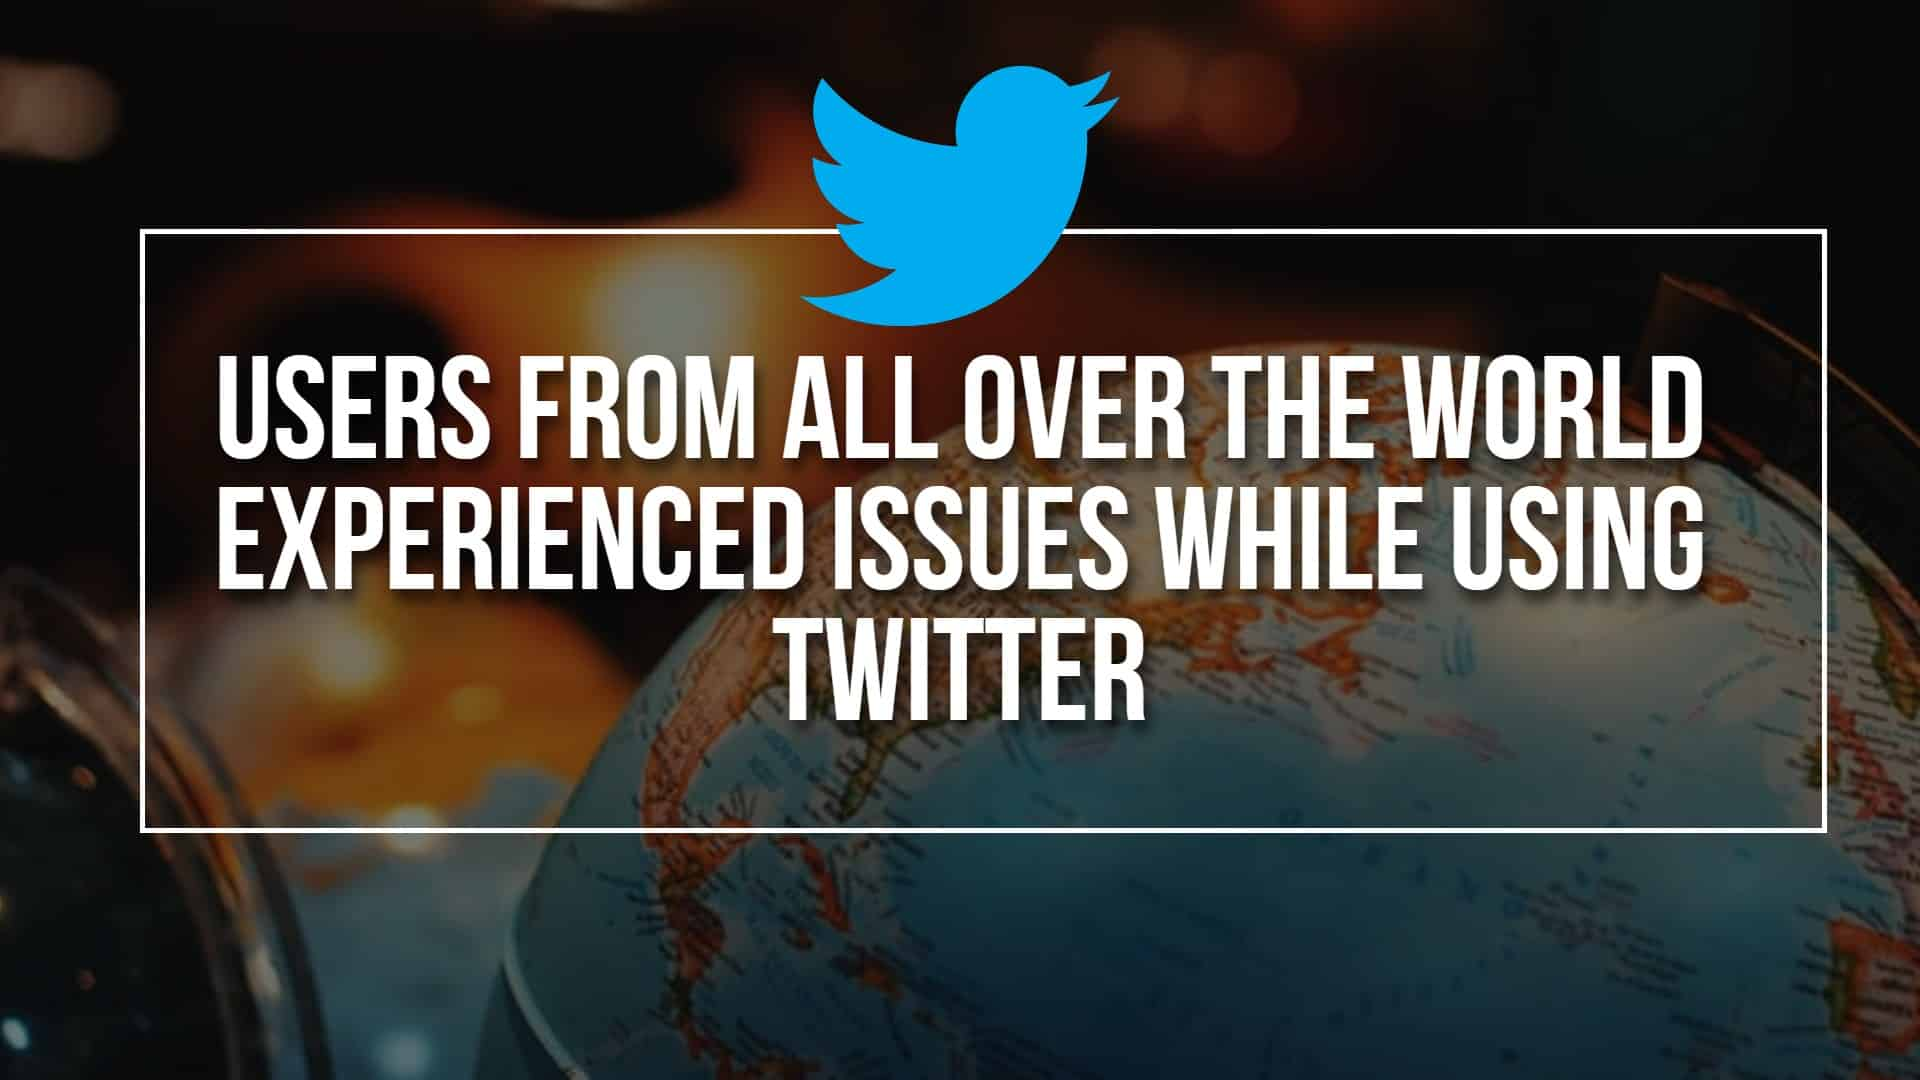 Users From All Over The World Experienced Issues While Using Twitter